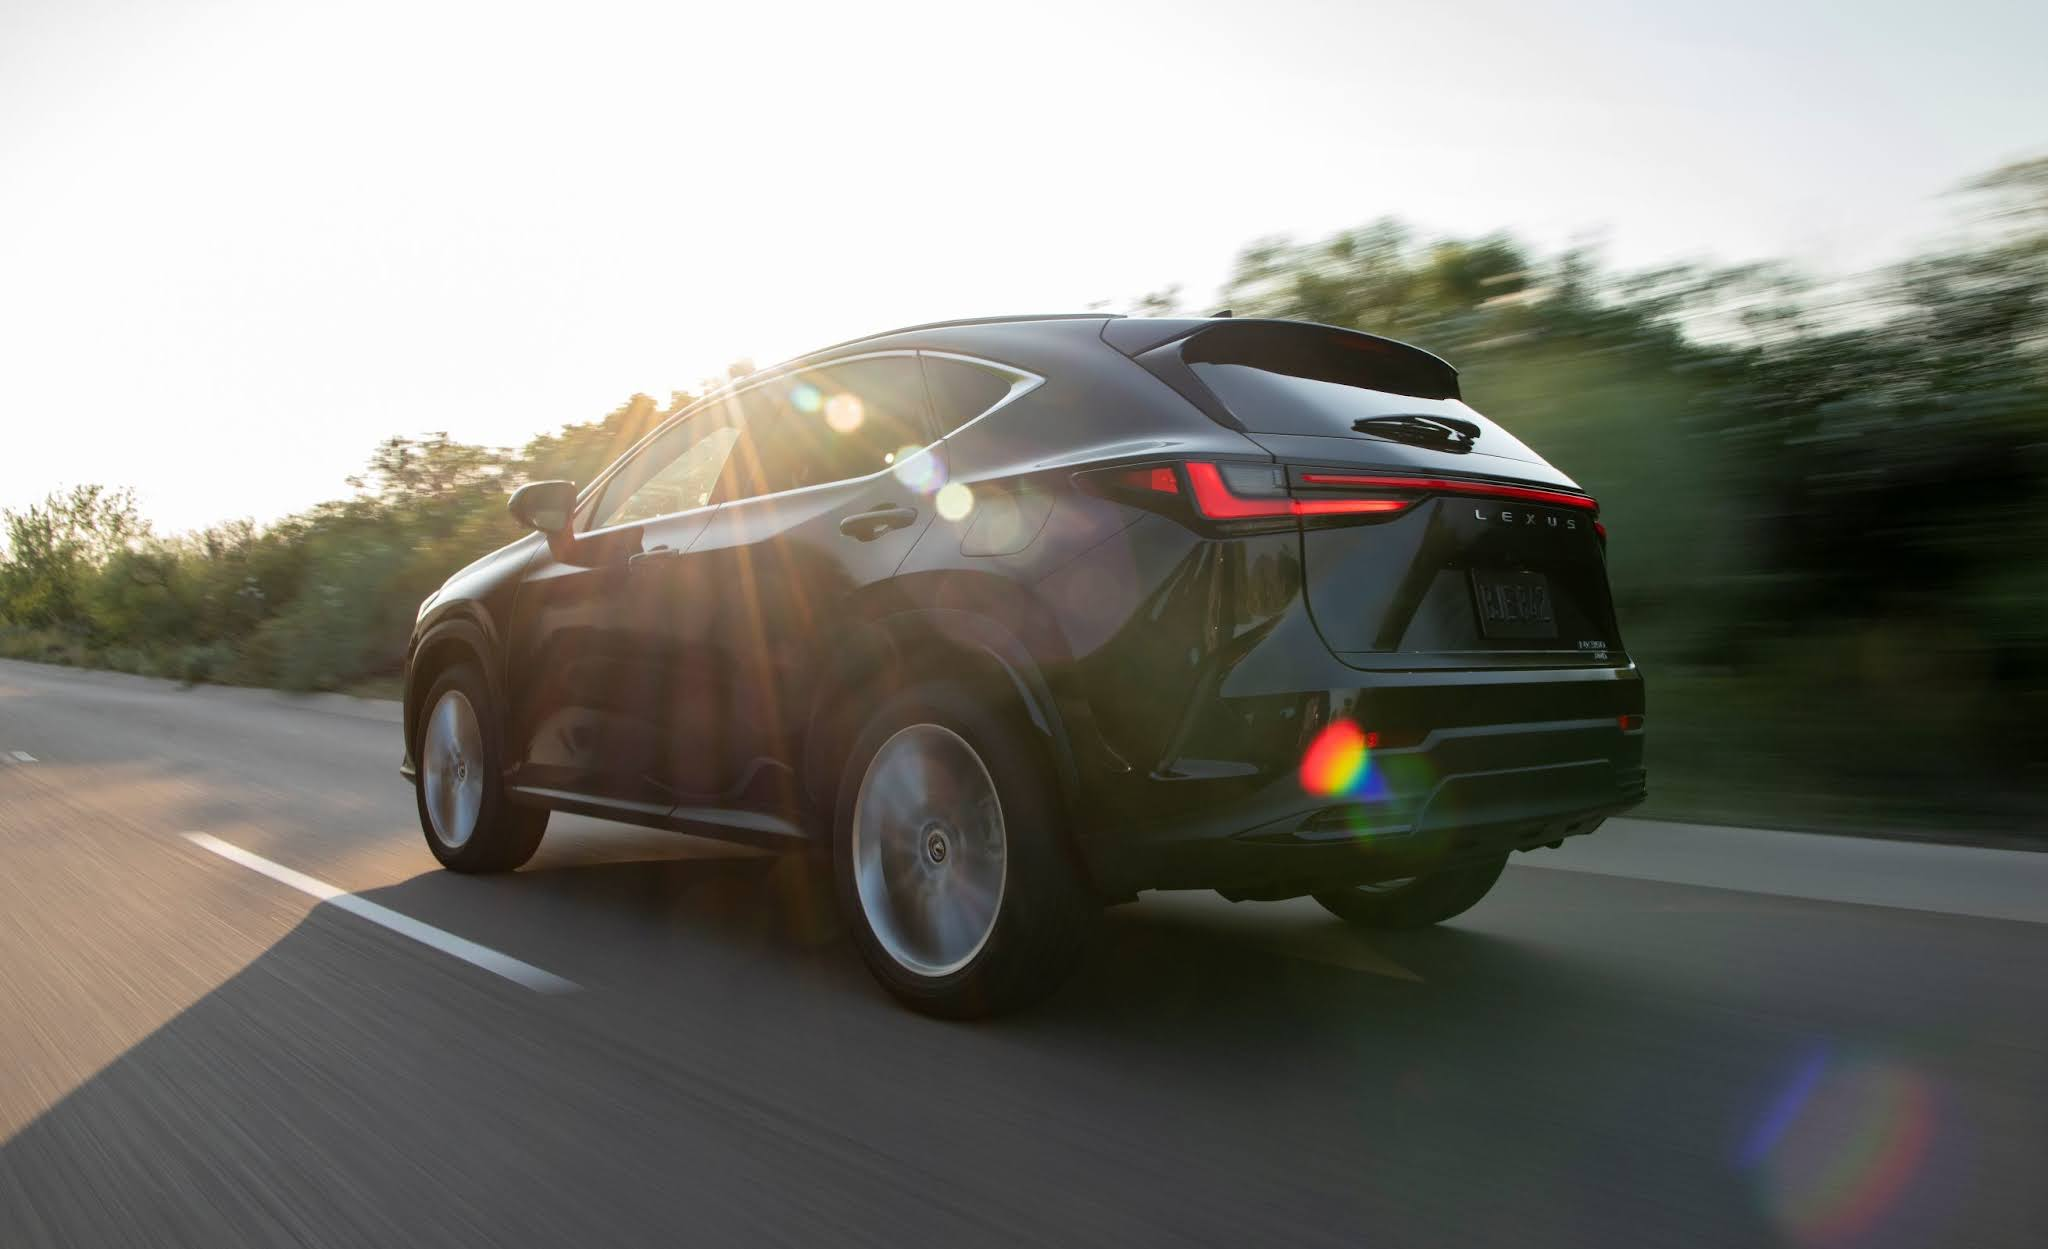 Lexus Brings the Next Chapter of the Brand to Life in the All-New 2022 Lexus NX